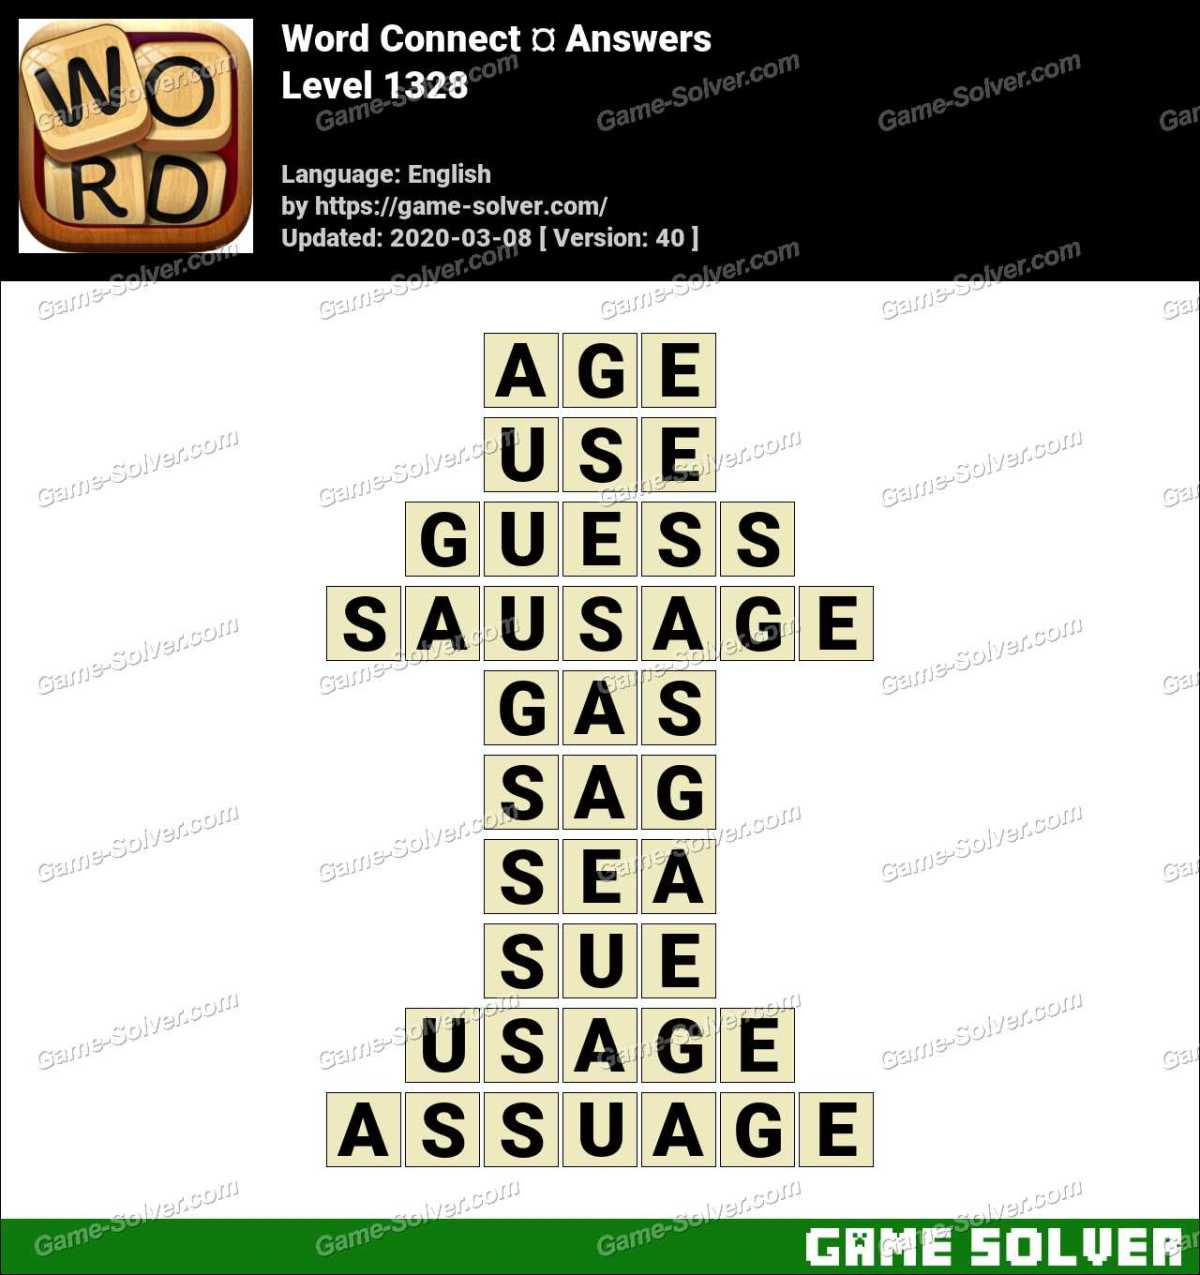 Word Connect Level 1328 Answers